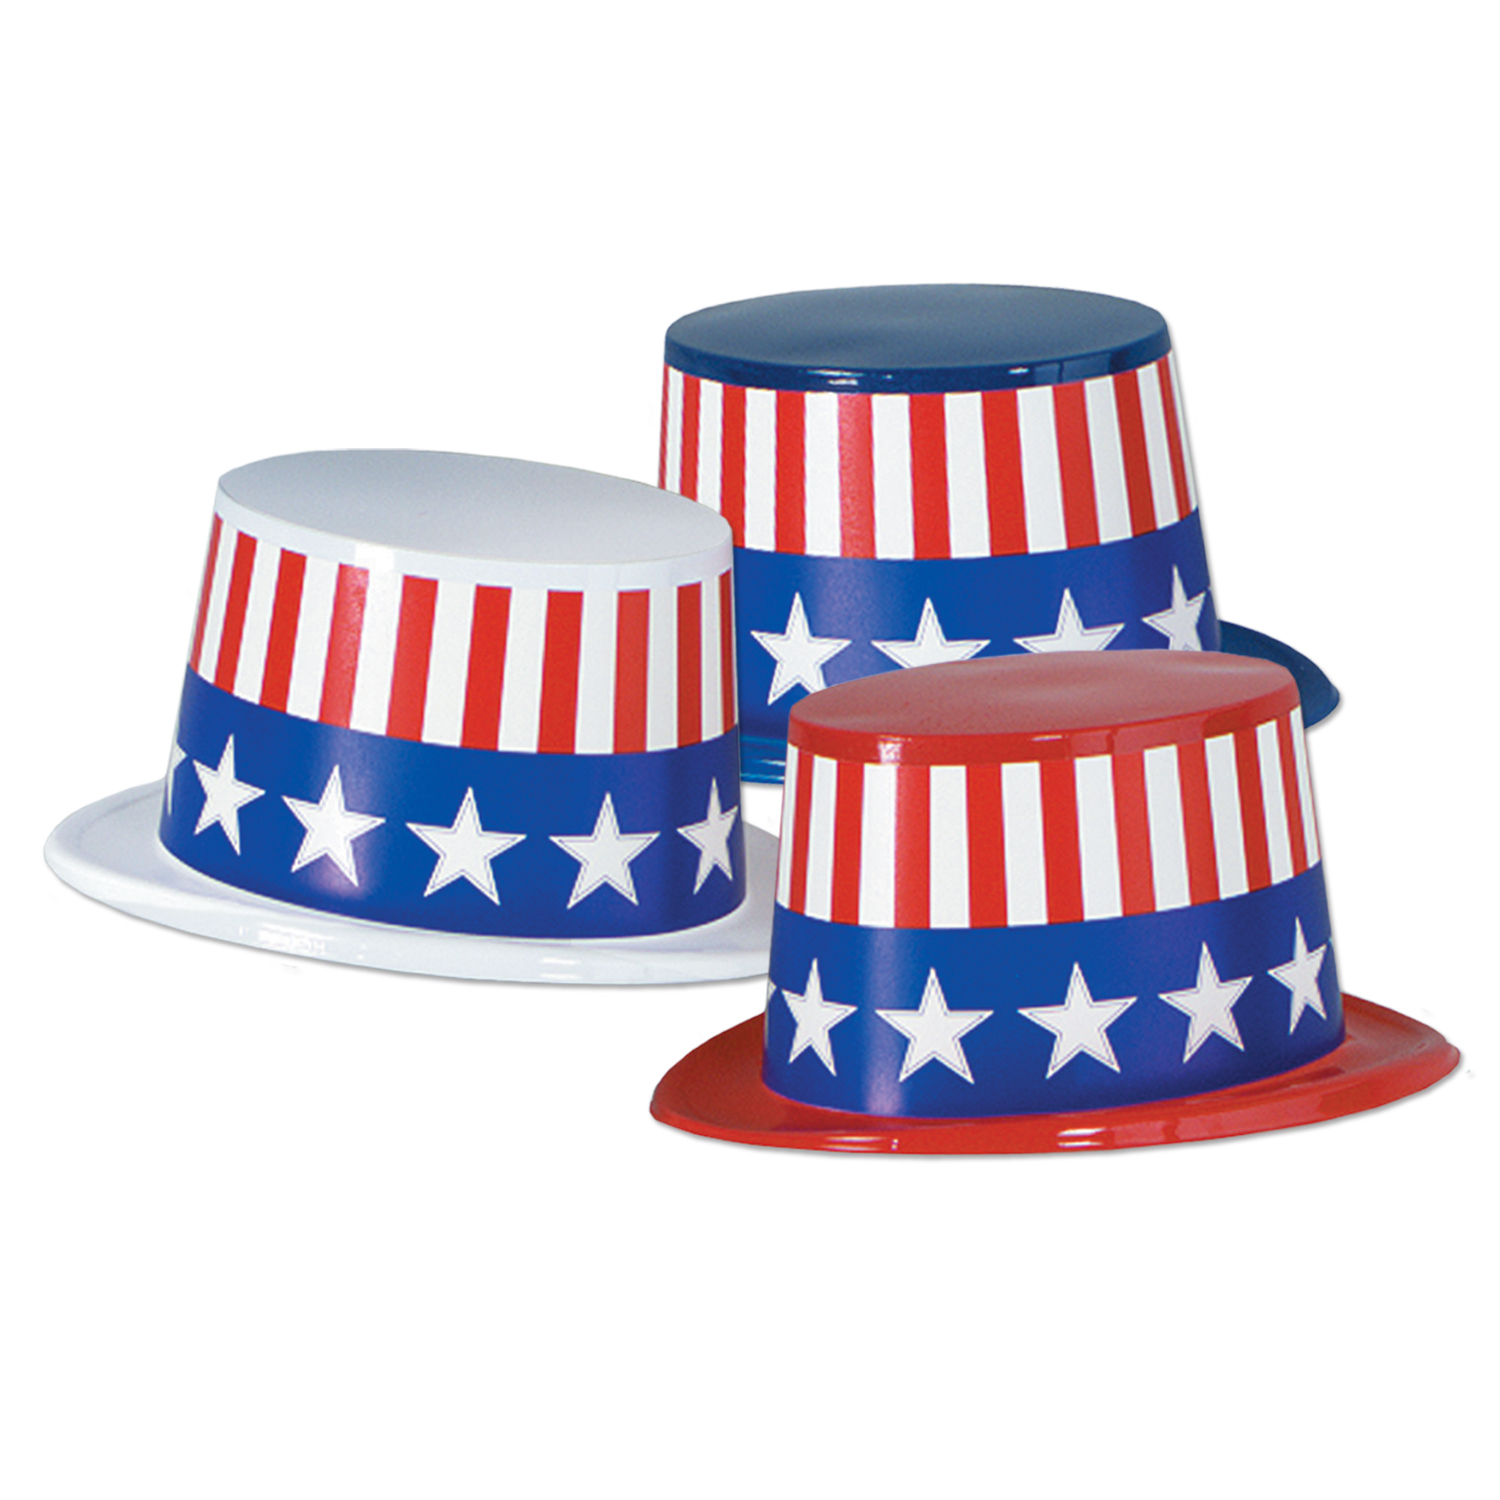 Plastic Toppers w/Patriotic Band (Pack of 25) Patriotic, plastic, toppers, hats, red, white, blue, 4th of July, stars, stripes